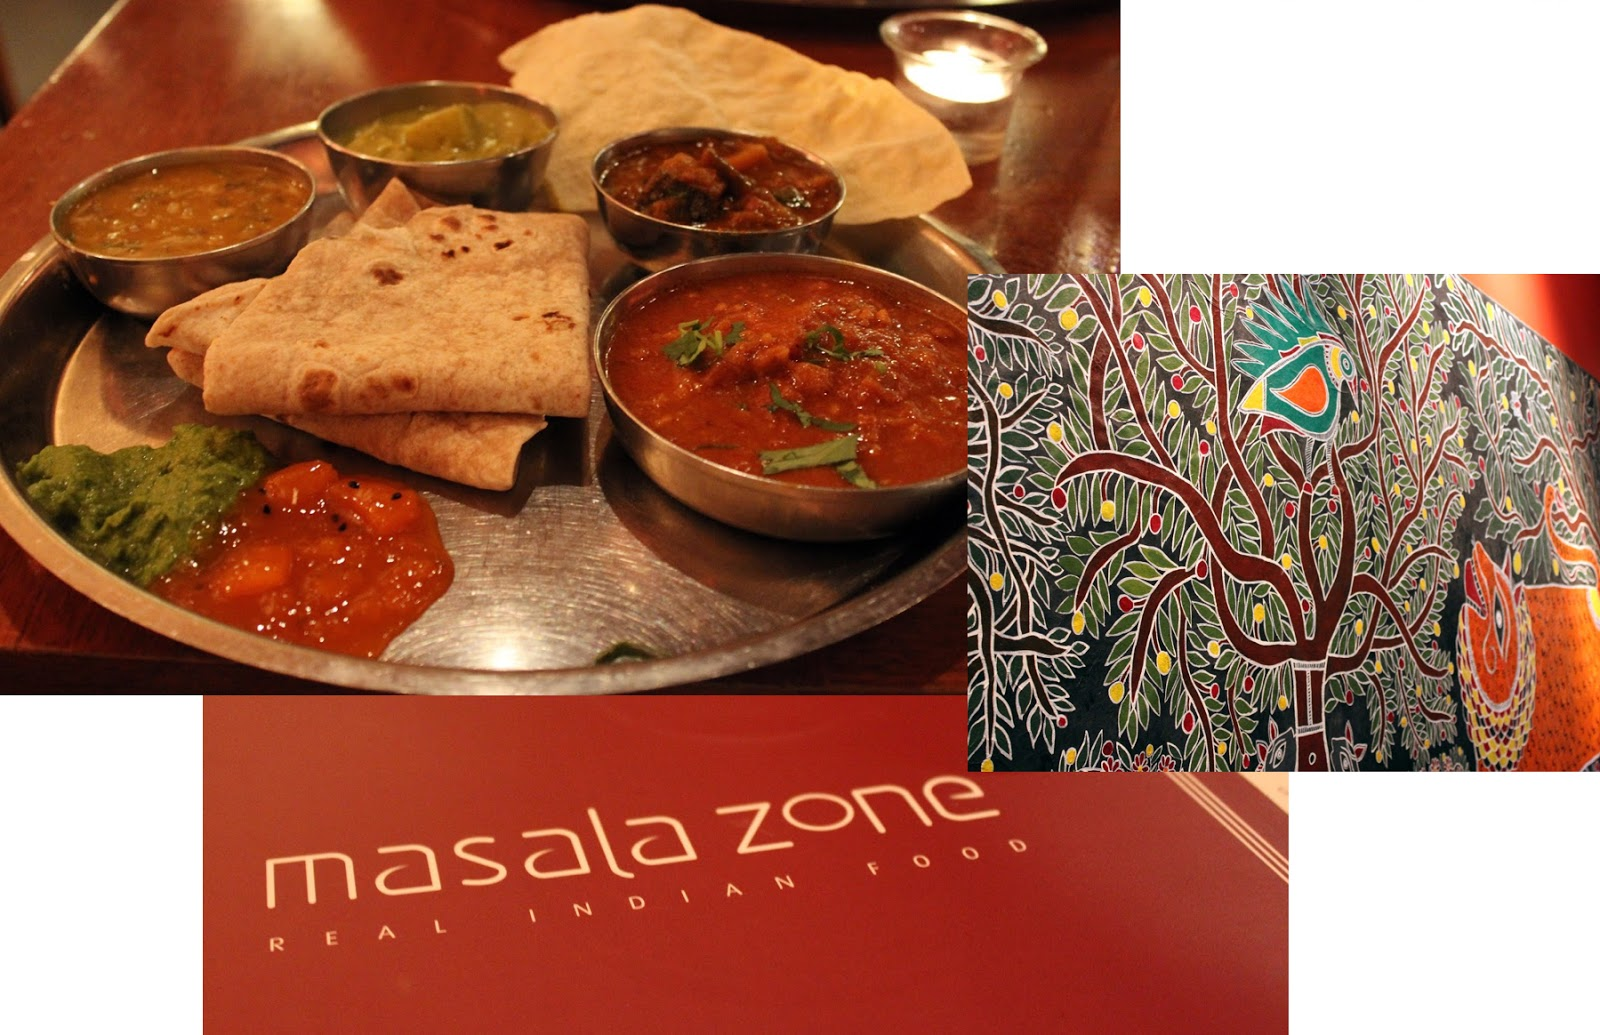 Food Restaurants London Travel Guide Indisch Essen Masala Zone